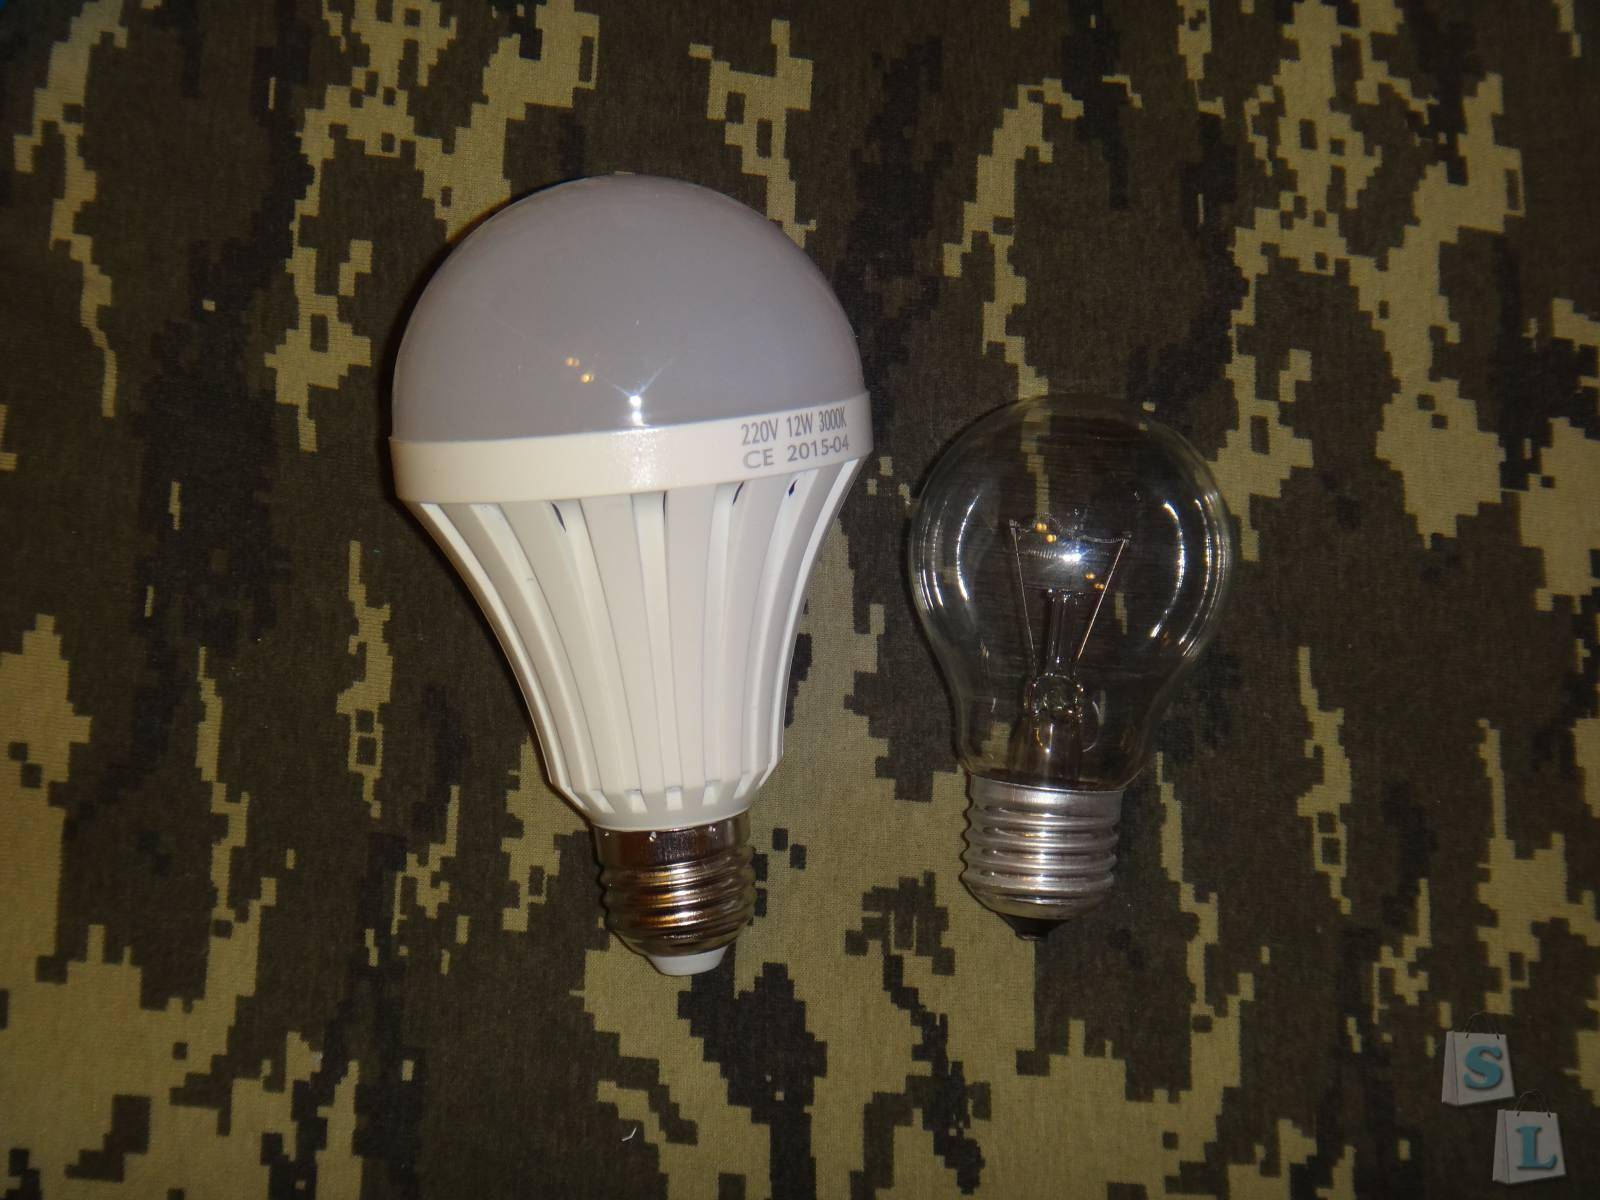 GearBest: Обзор LED лампы YouOKLight 15W E27 24 SMD 5630 850LM Eco - friendly 3000K